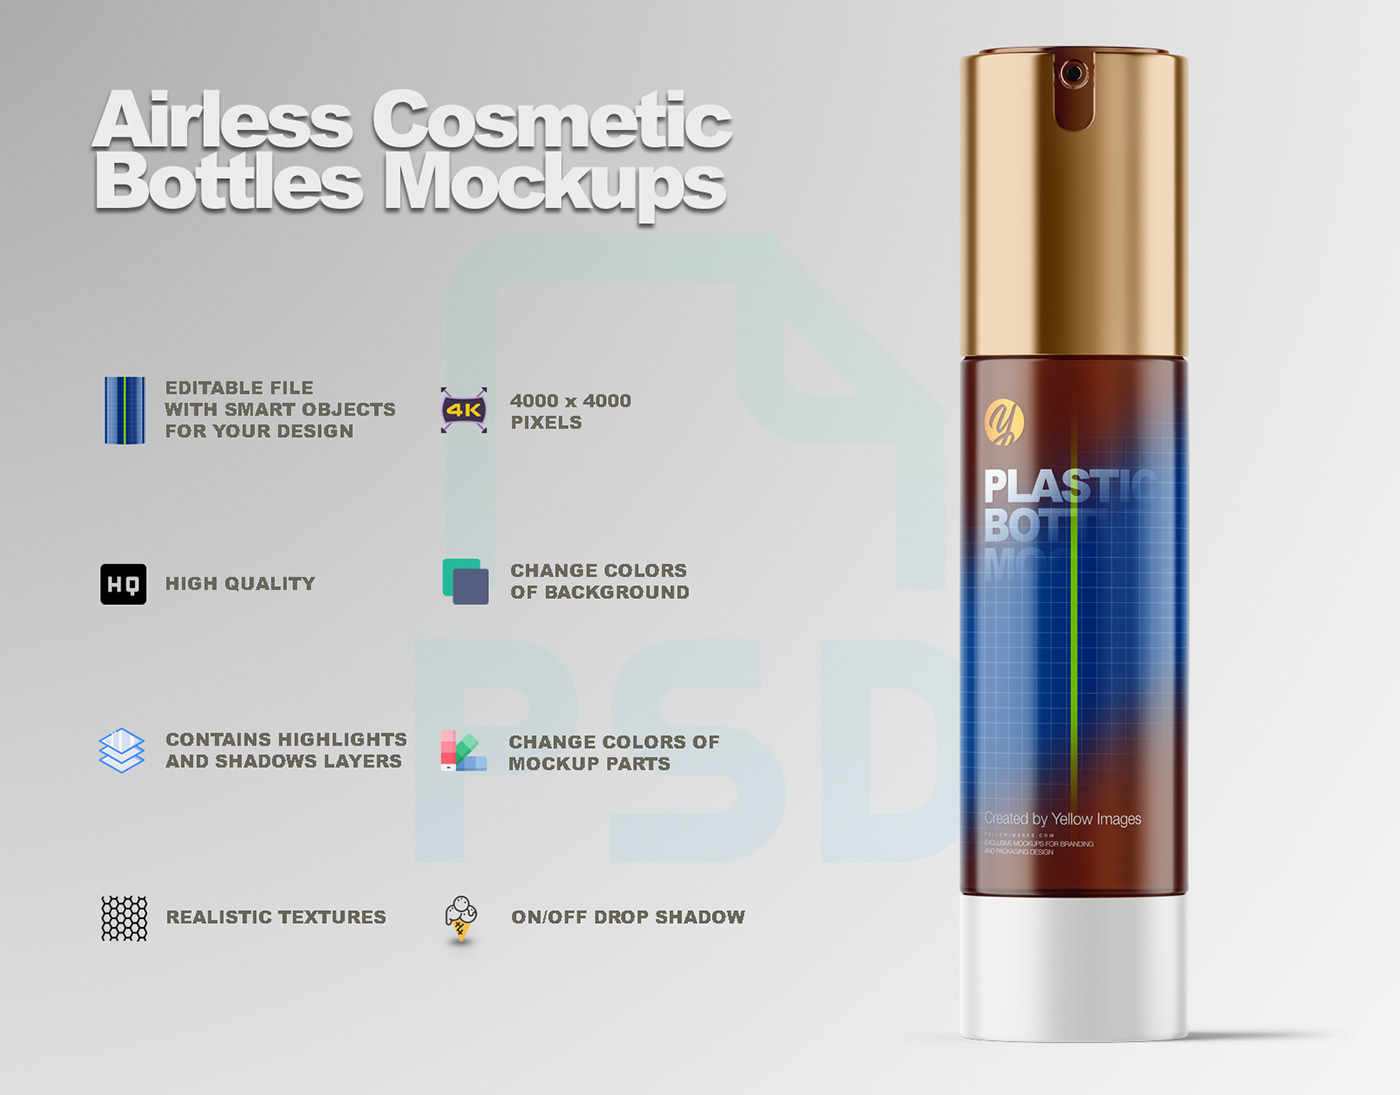 Download Airless Cosmetic Bottles Mockups On Behance PSD Mockup Templates